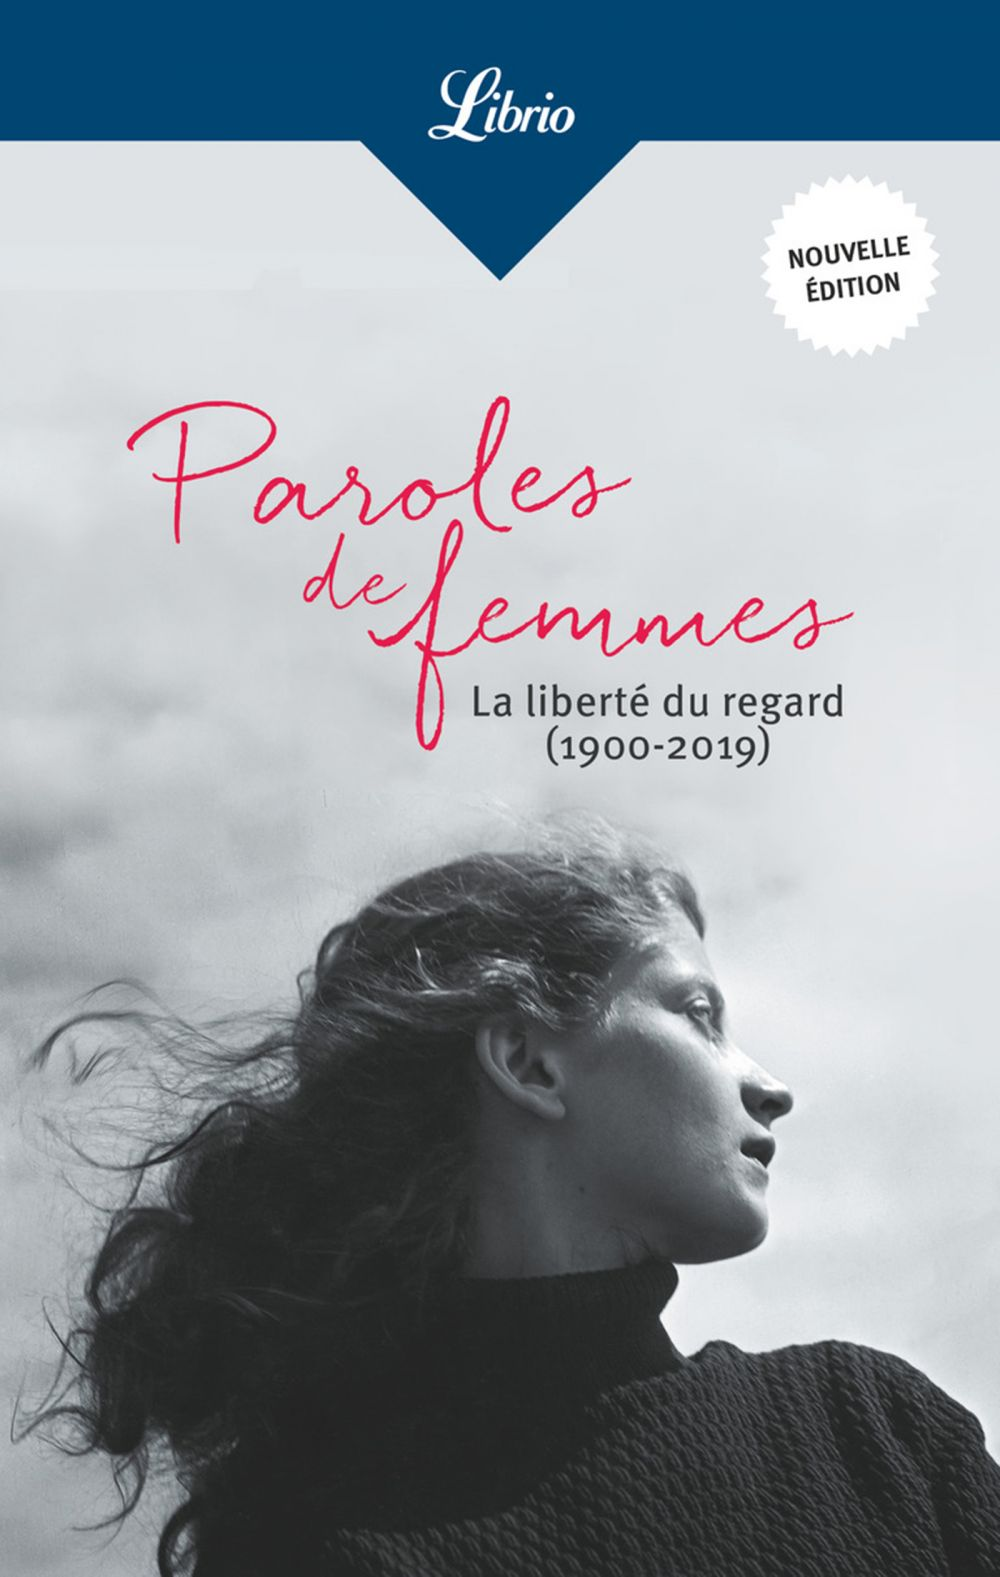 Paroles de femmes